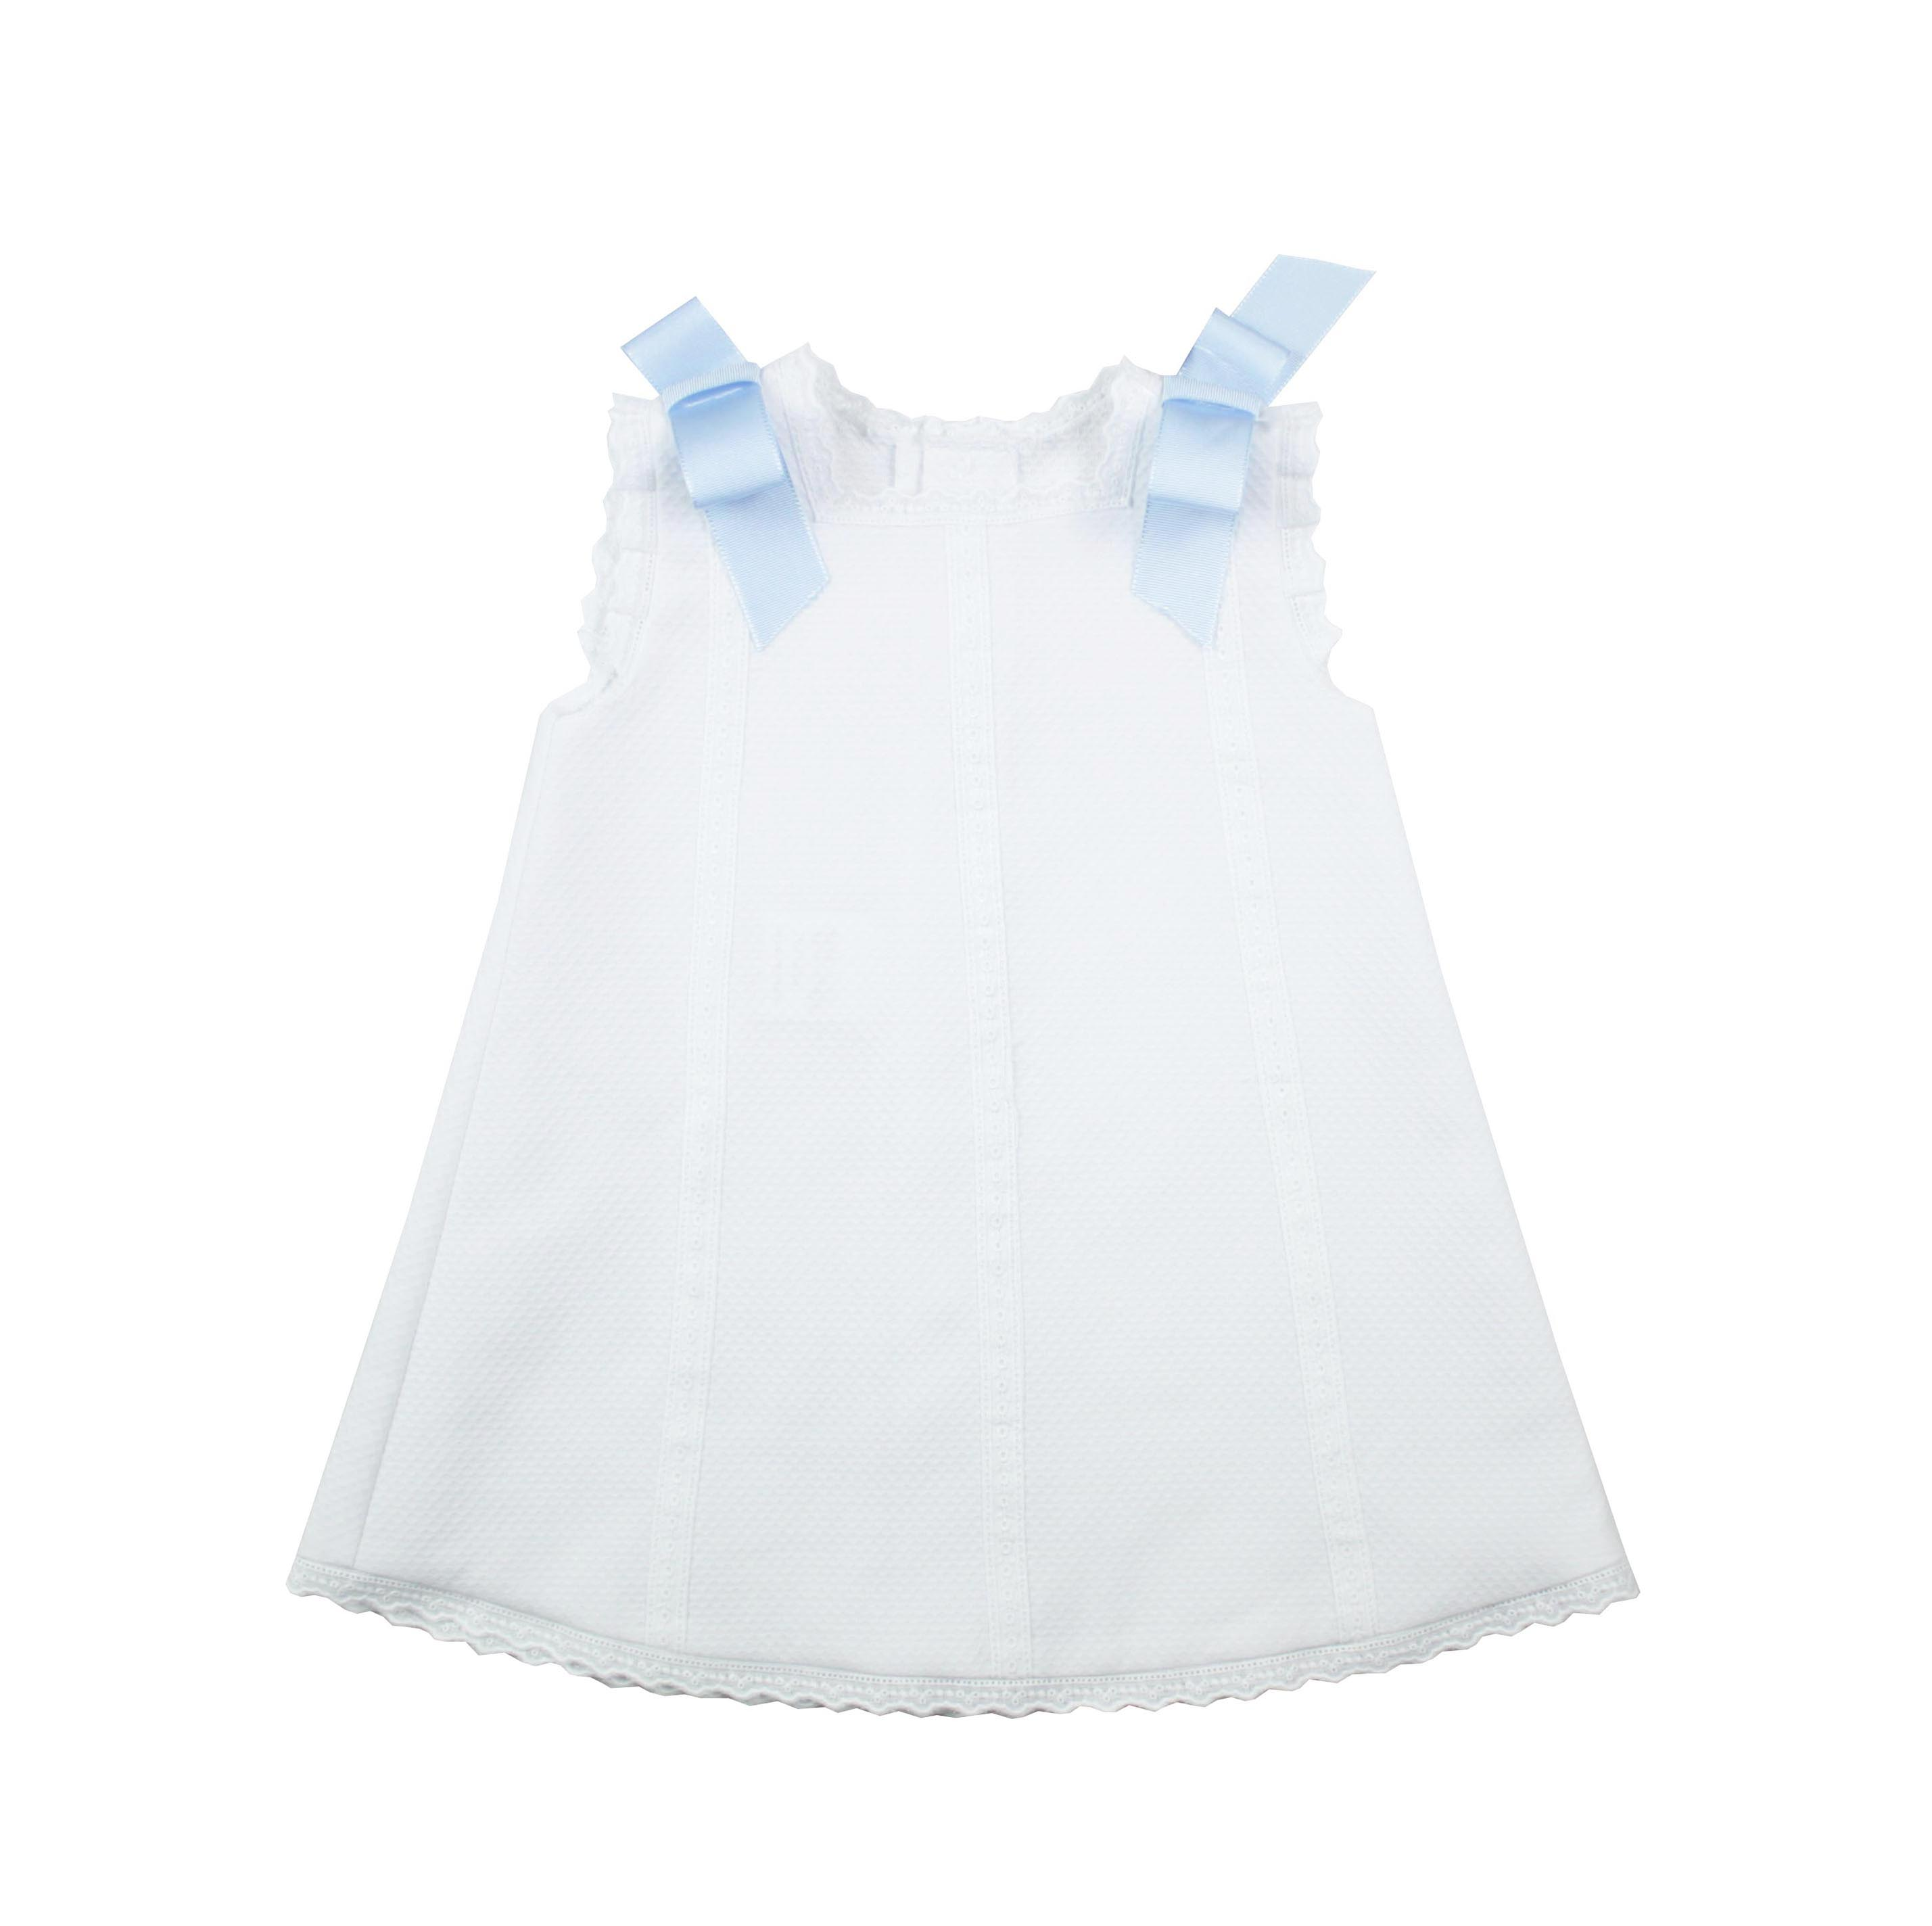 Baby S Dress In White Pique Fabric And Blue Bows Made In Spain By